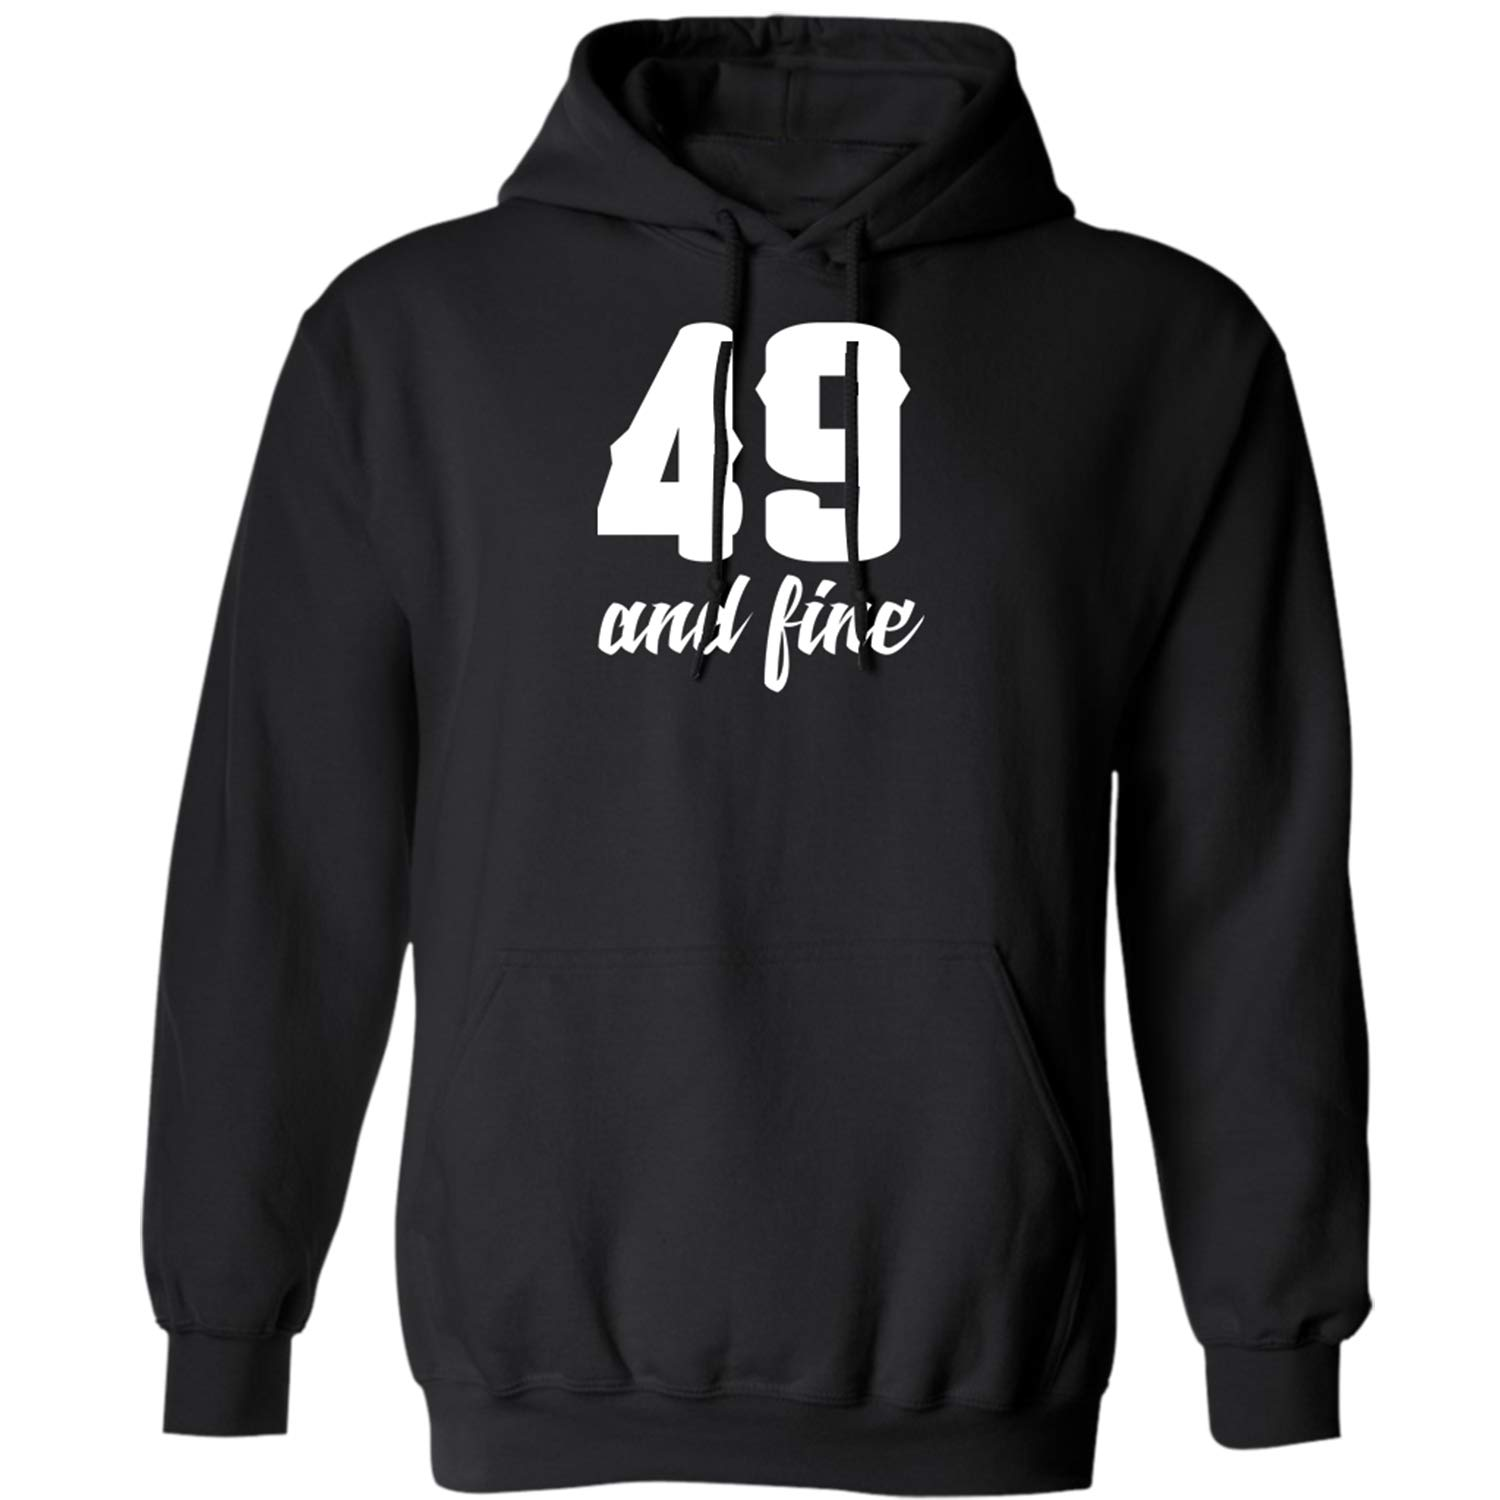 Funny B-Day Gifts Idea Age Hoodie 49th Birthday Gift 49 Years Old and Fine